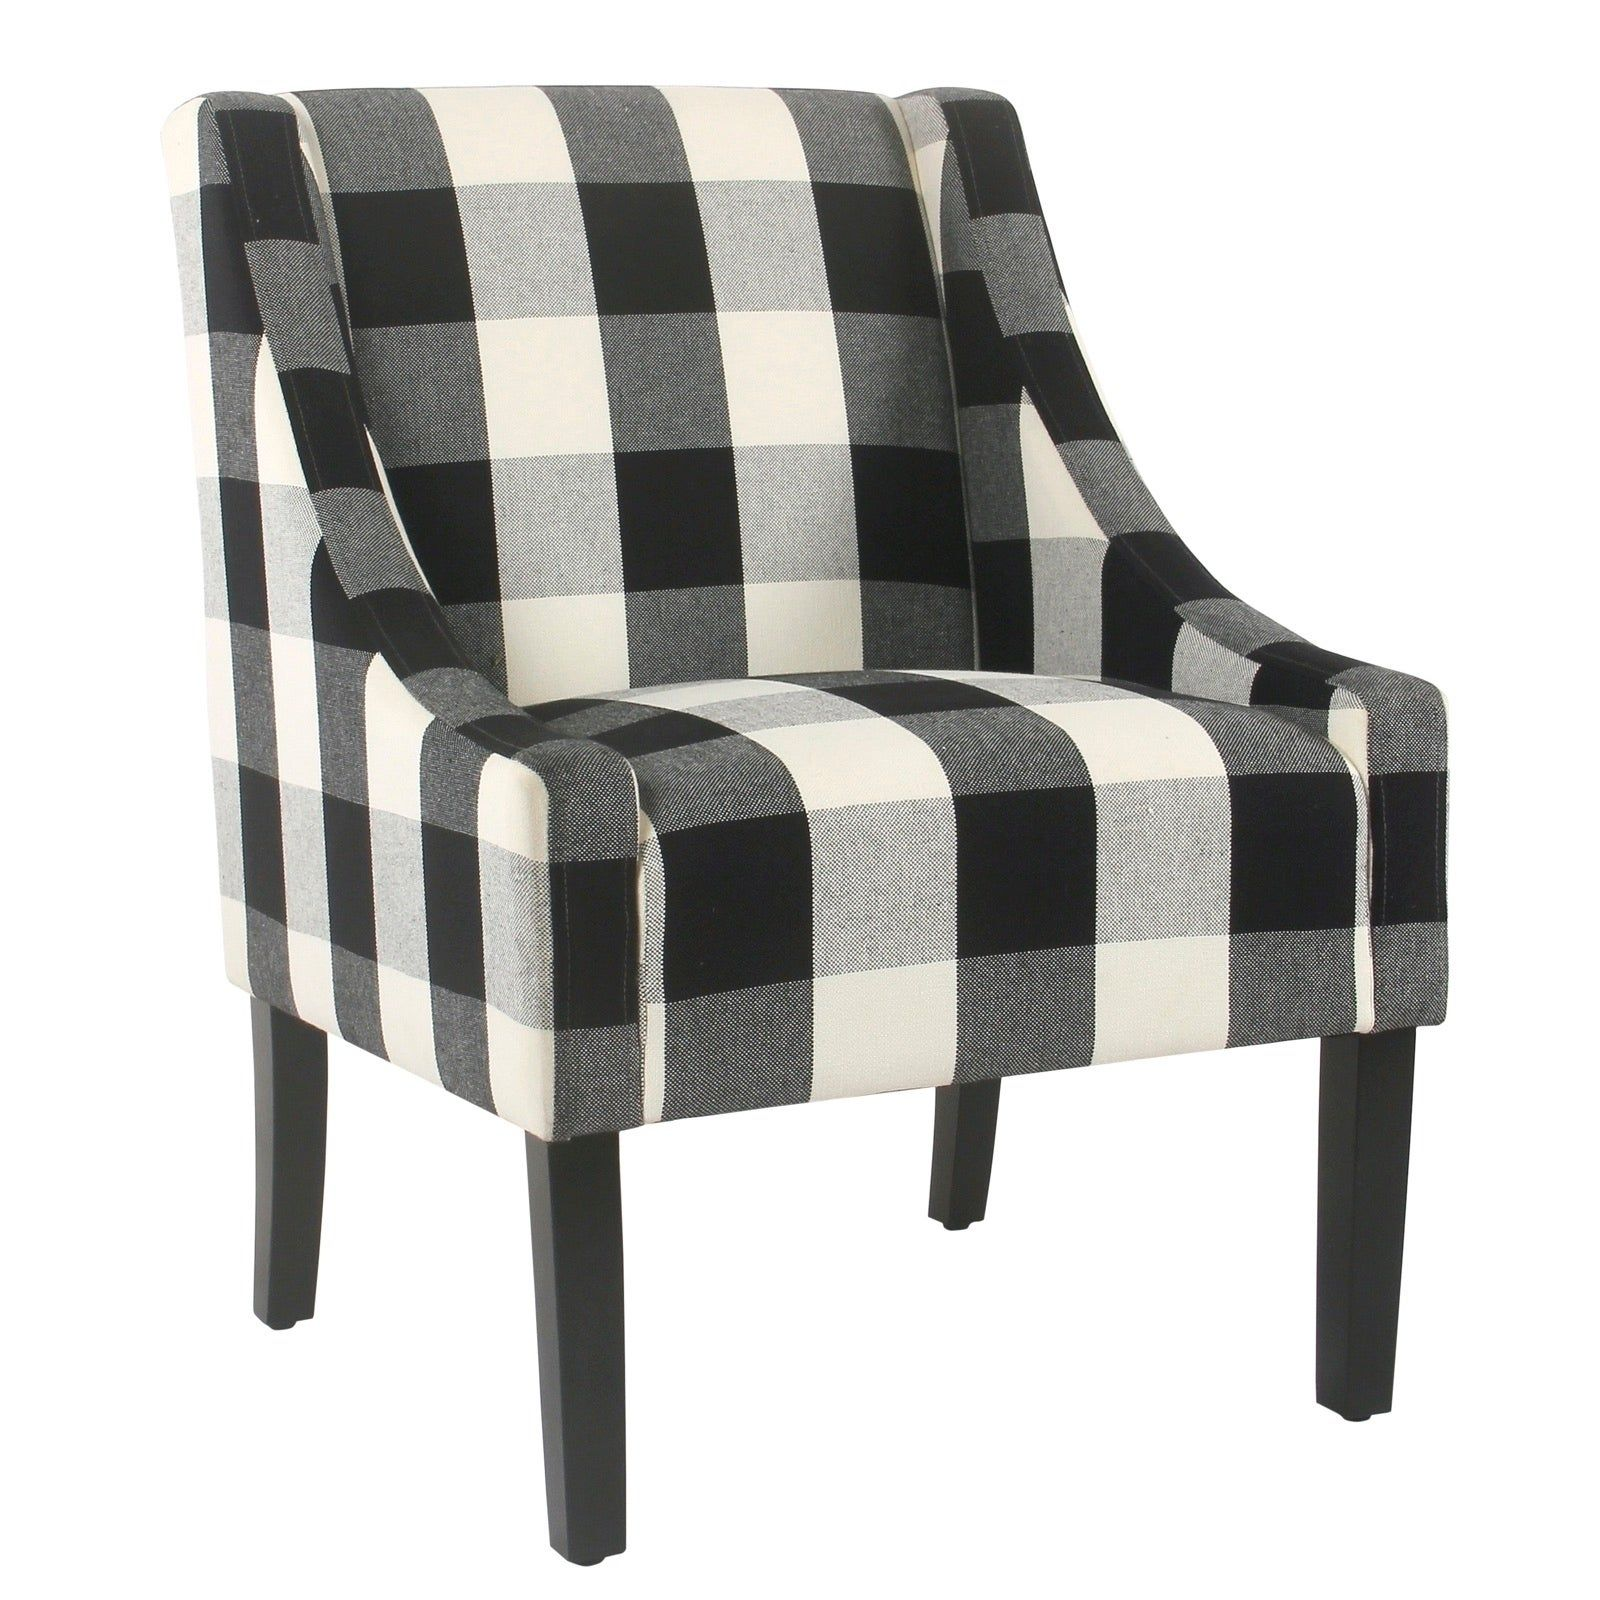 Fabric Upholstered Wooden Accent Chair With Buffalo Plaid Pattern